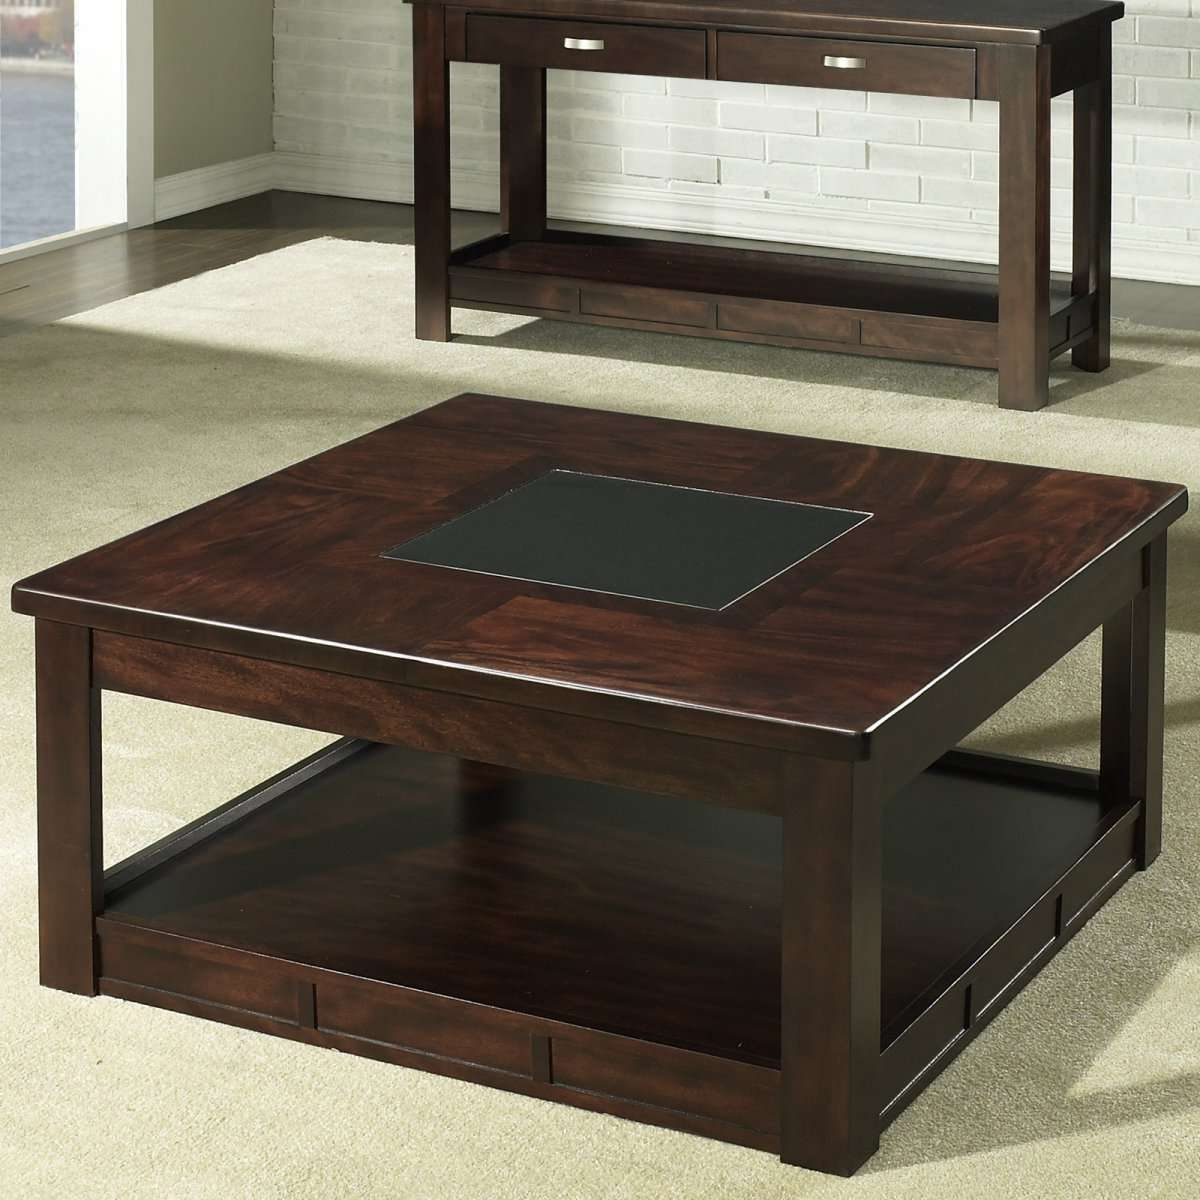 Coffee Tables : Coffee Table Square Wood With Storage Tables Glass Within Current Square Wood Coffee Tables With Storage (View 8 of 20)